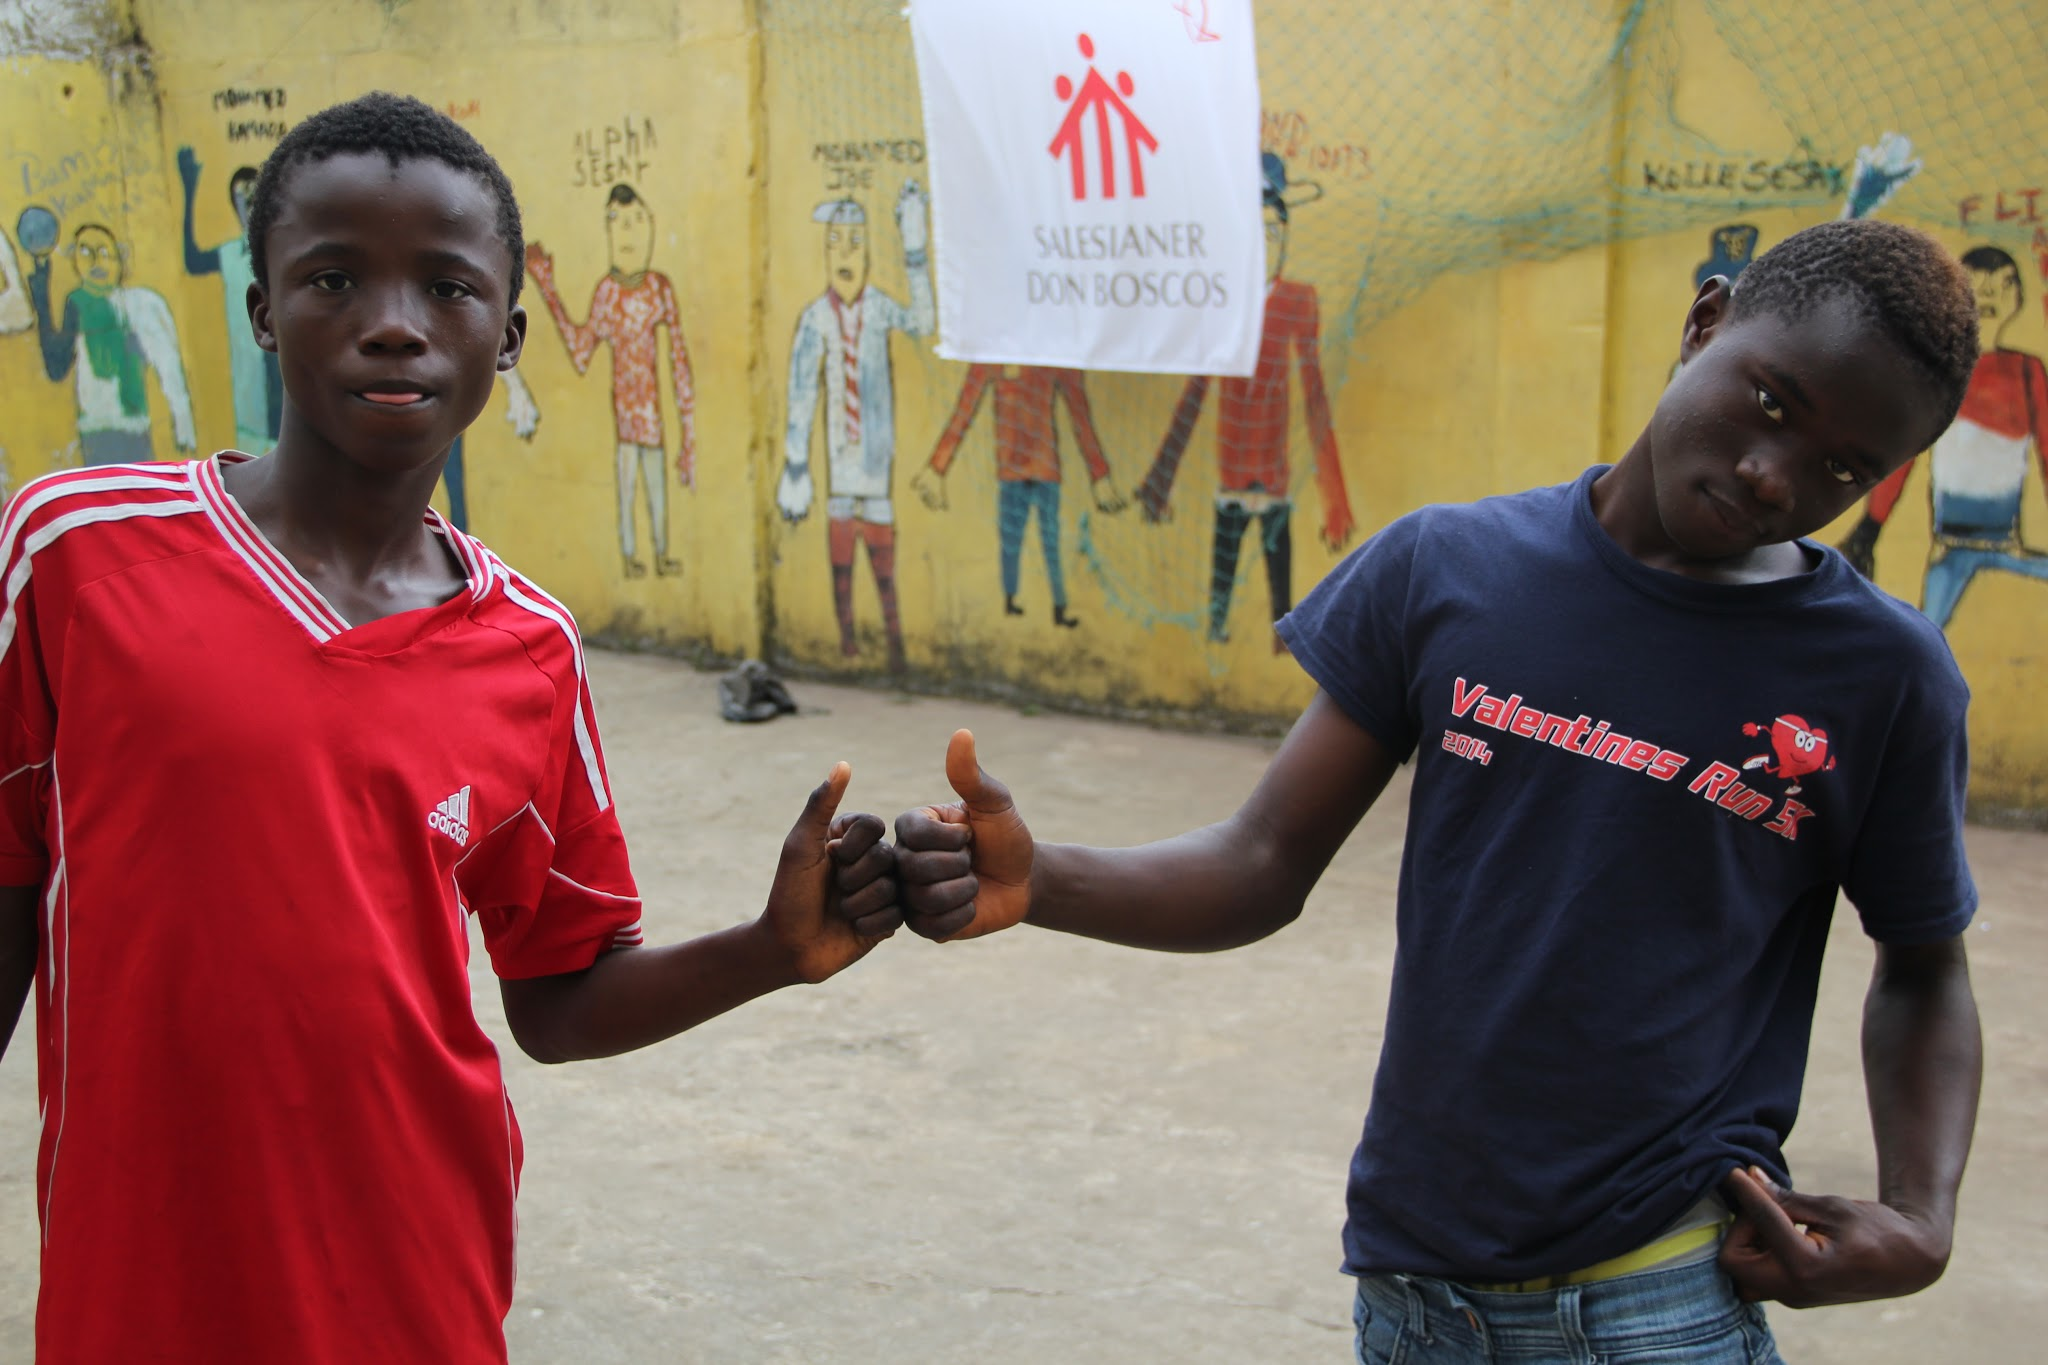 Salesian missionaries working with young people in Sierra Leone